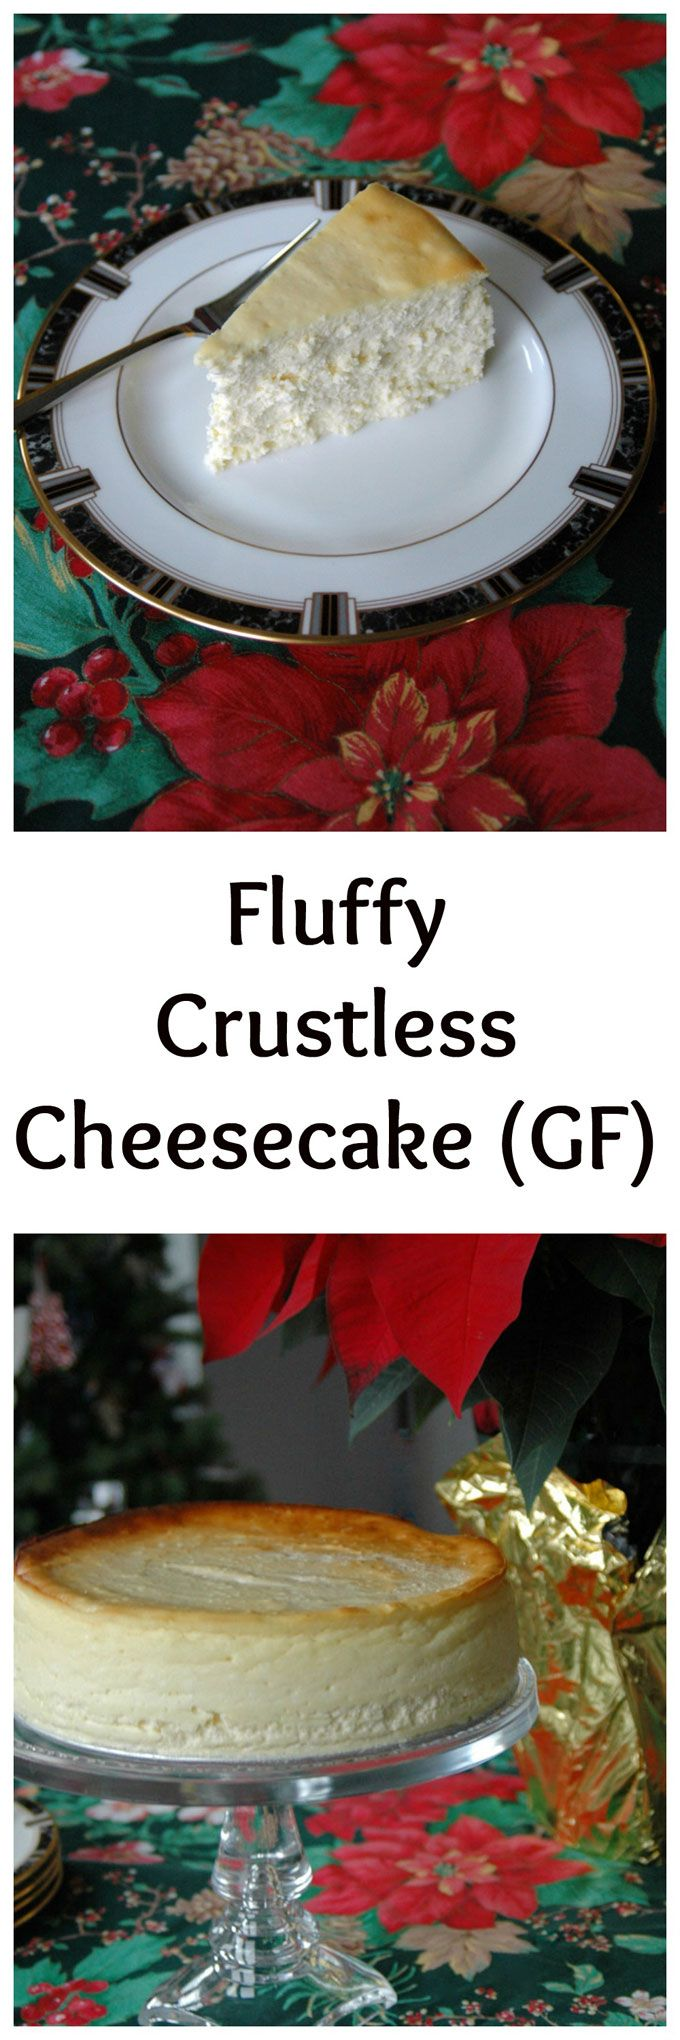 Fluffy Crustless Cheesecake - the best cheesecake, and it's gluten free! One of the most popular recipes on Cooking with Mamma C!